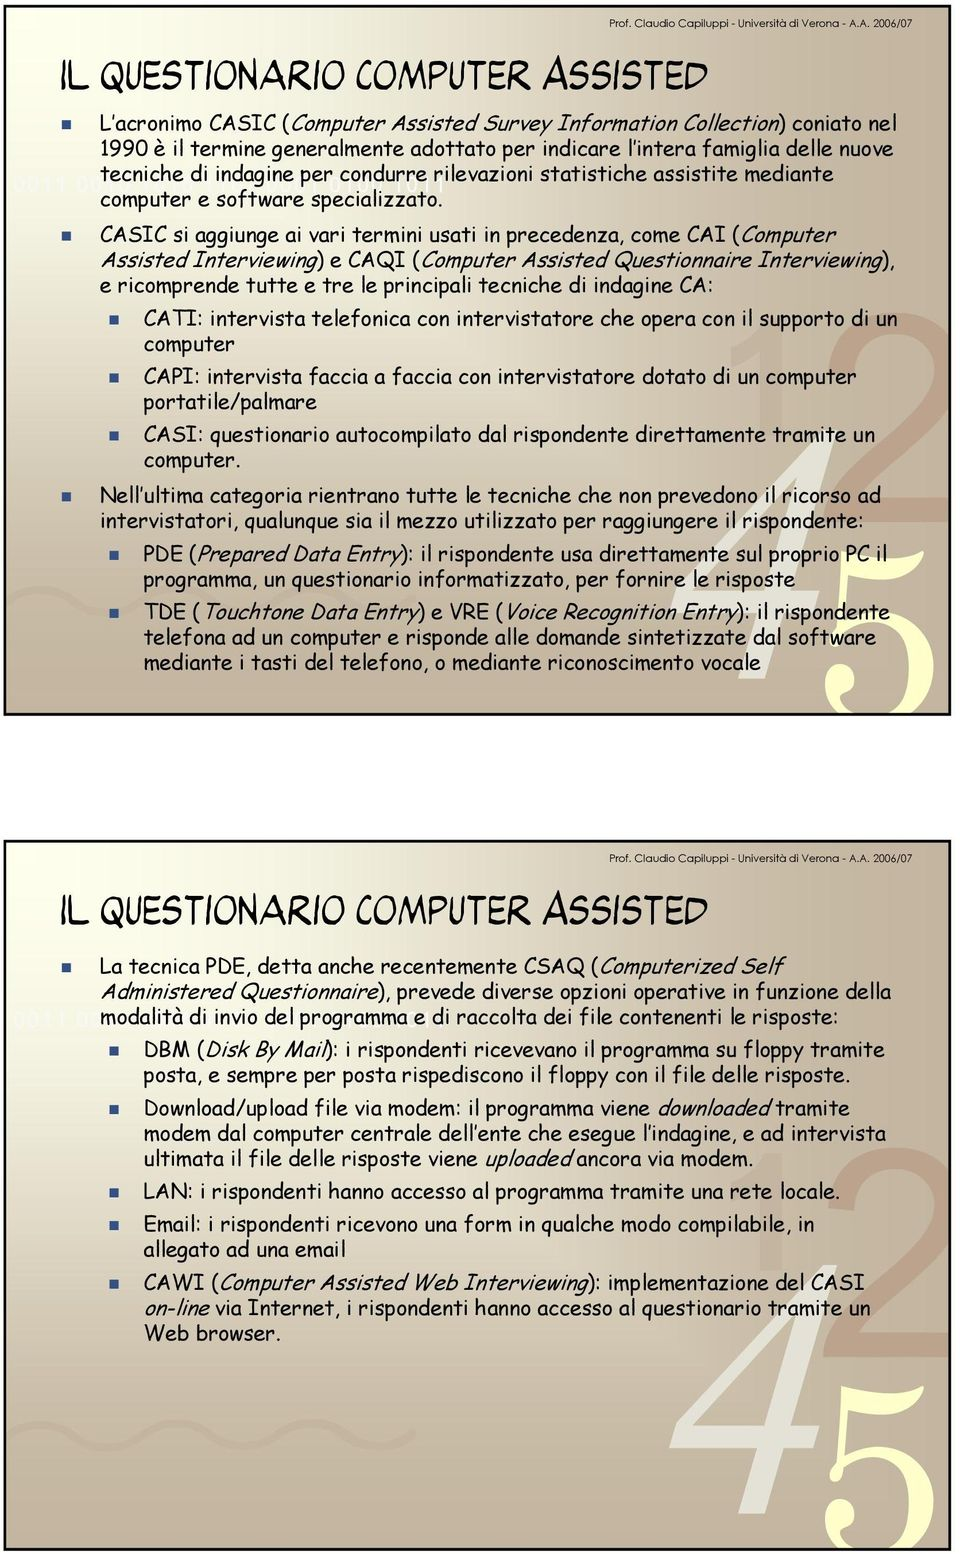 CASIC si aggiunge ai vari termini usati in precedenza, come CAI (Computer Assisted Interviewing) e CAQI (Computer Assisted Questionnaire Interviewing), e ricomprende tutte e tre le principali